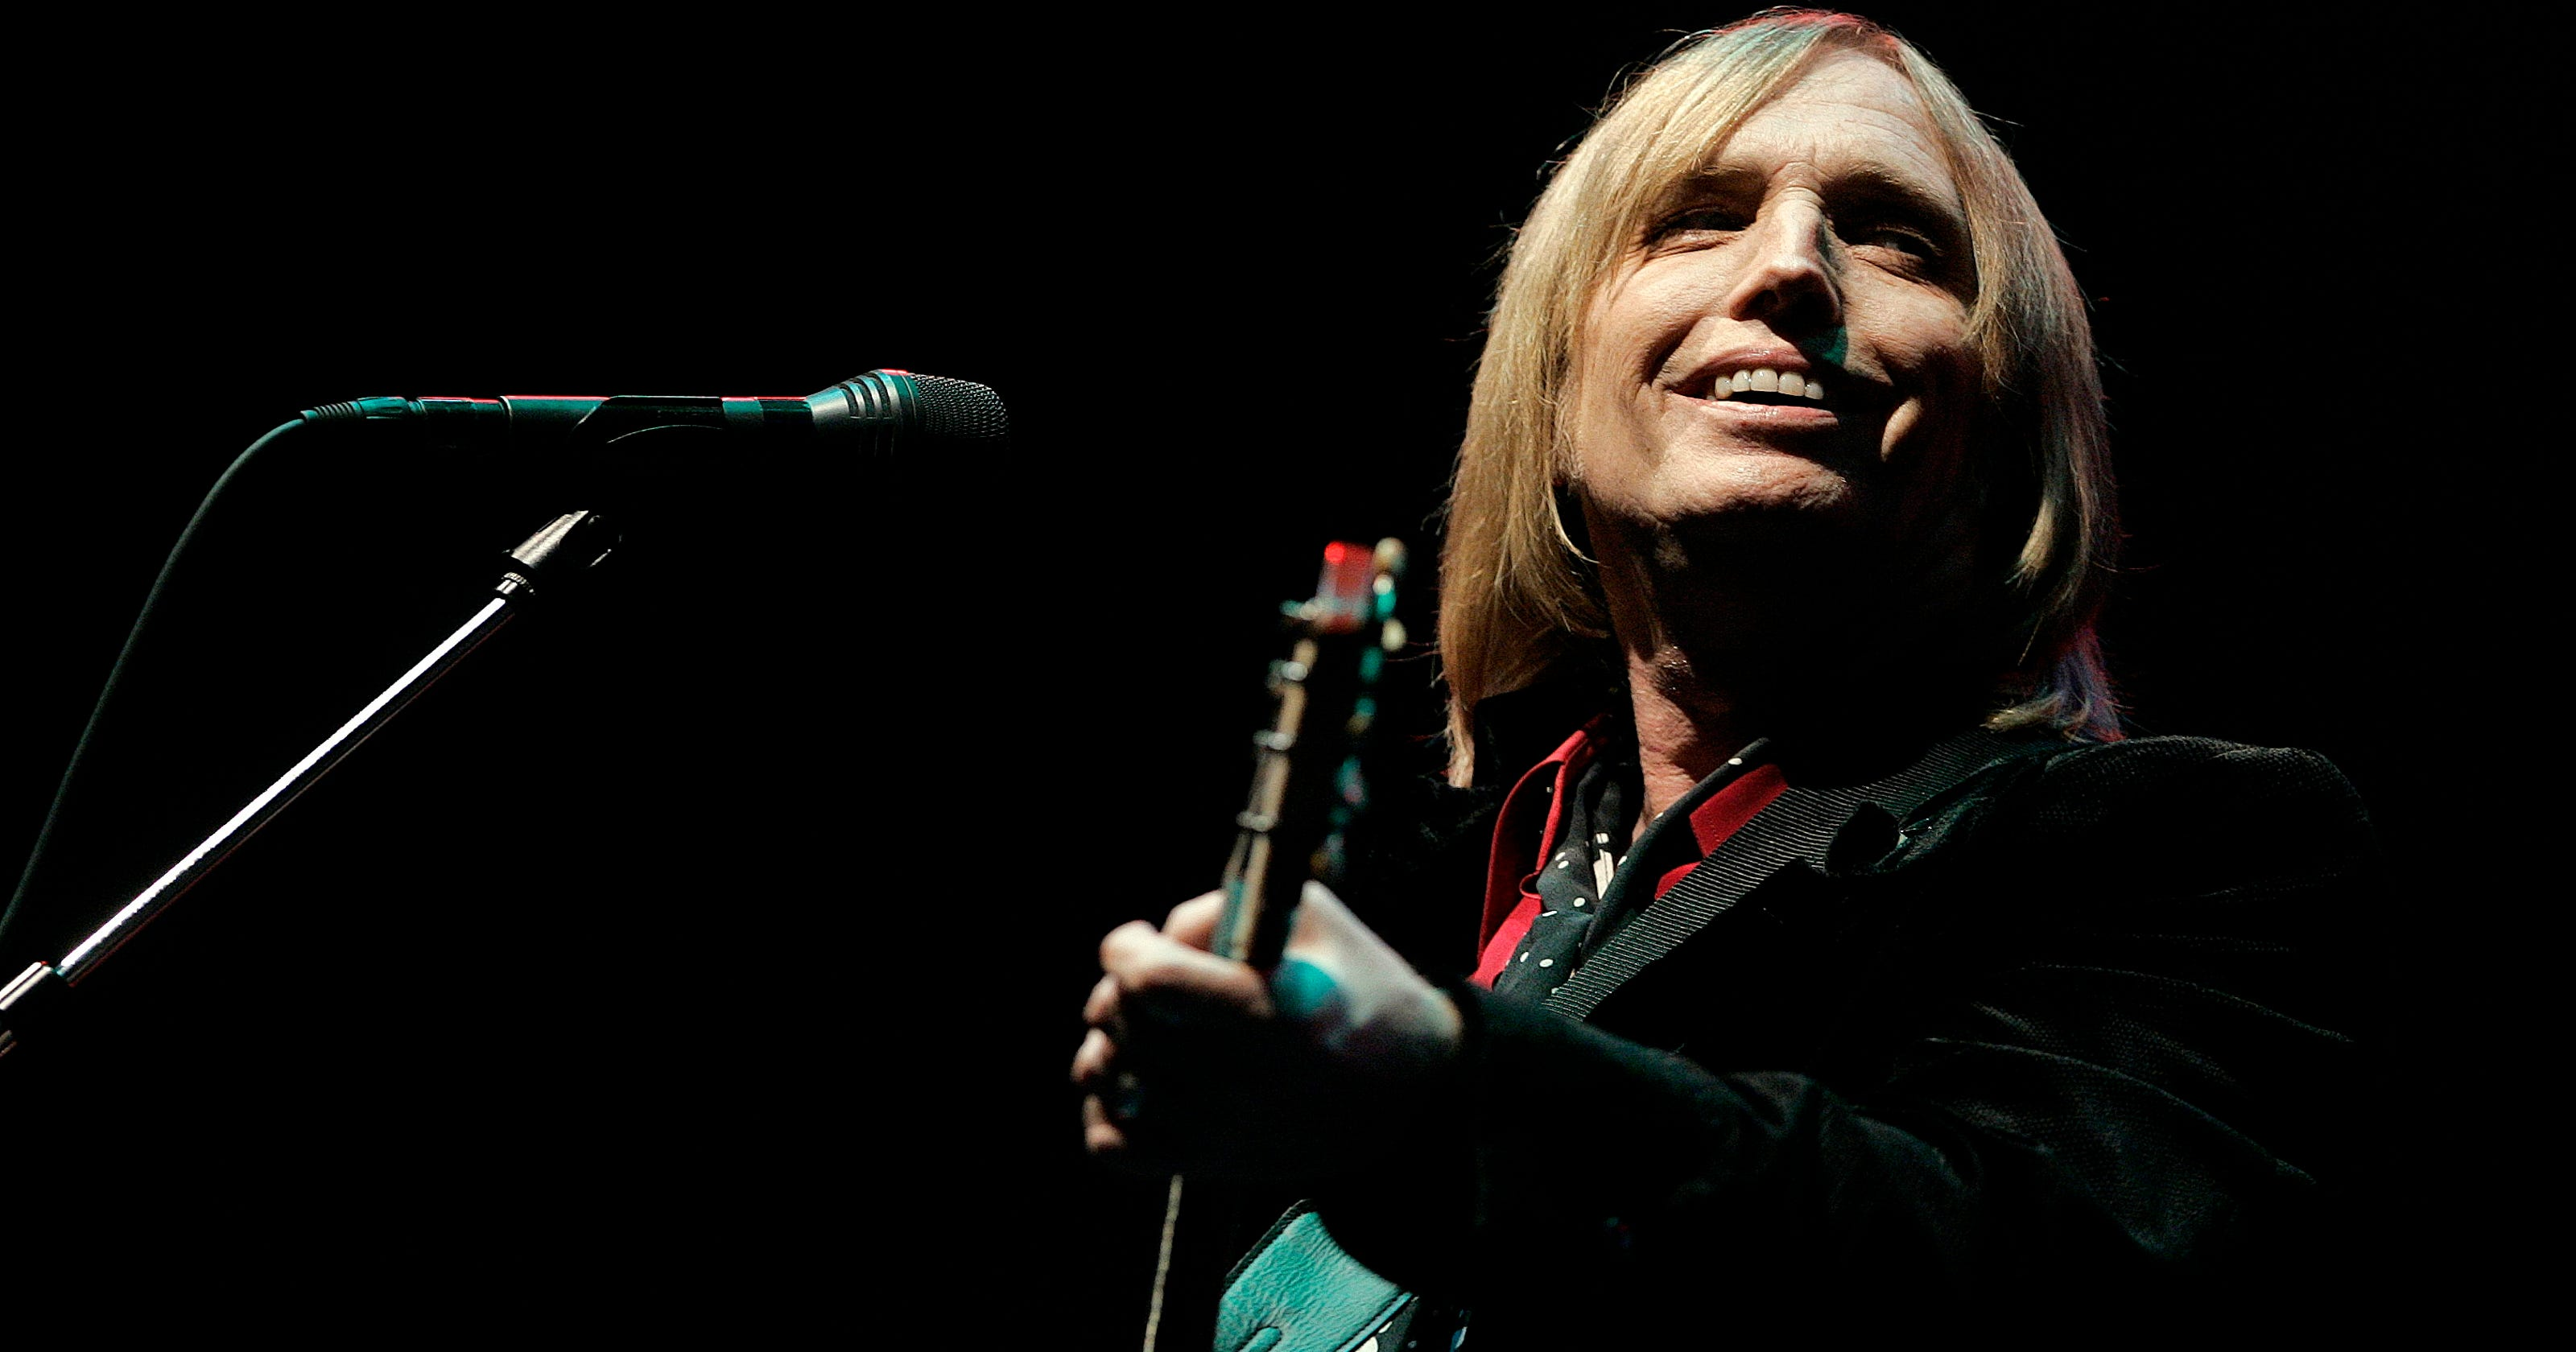 tom petty s death is under investigation despite autopsy